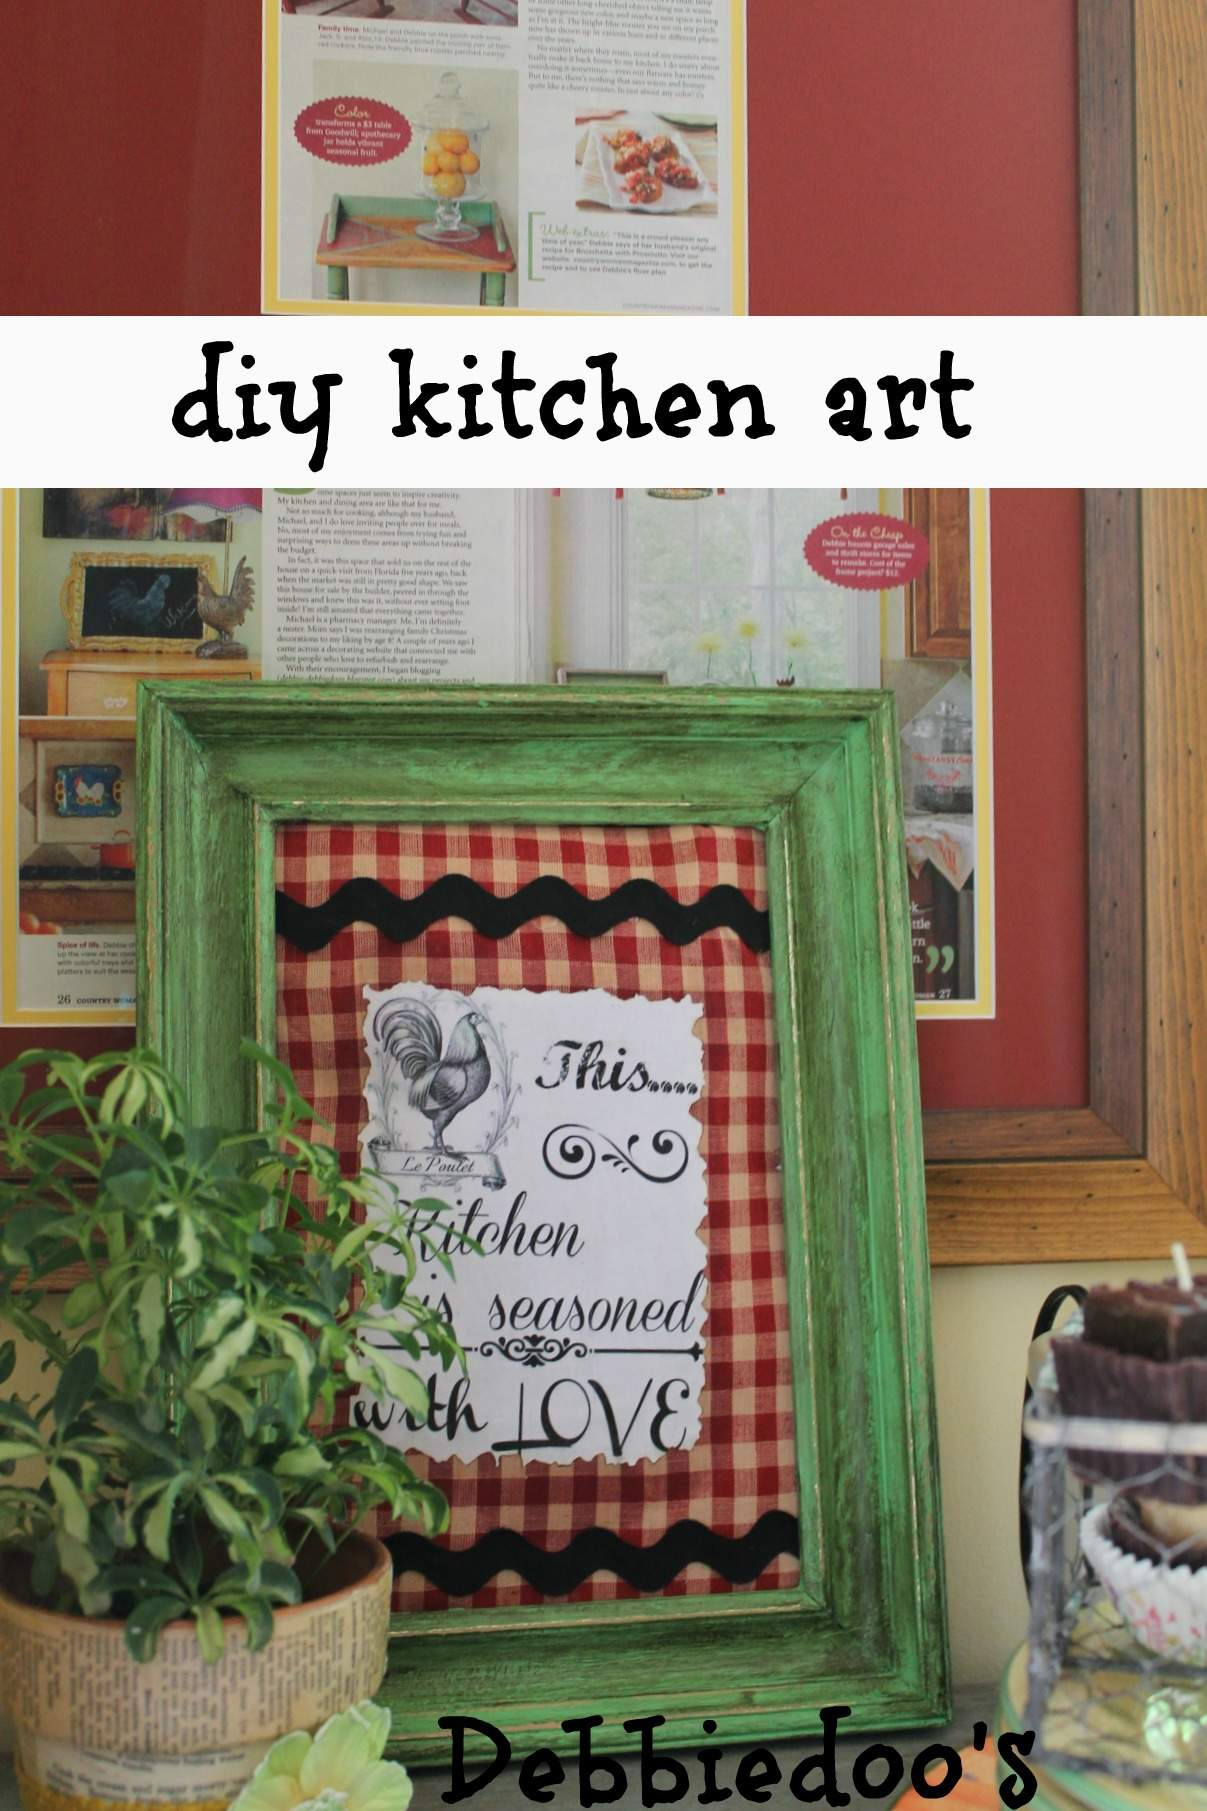 Diy kitchen decor crafts - Diy Kitchen Art Work With Mod Podge There Are Crafts And Decor